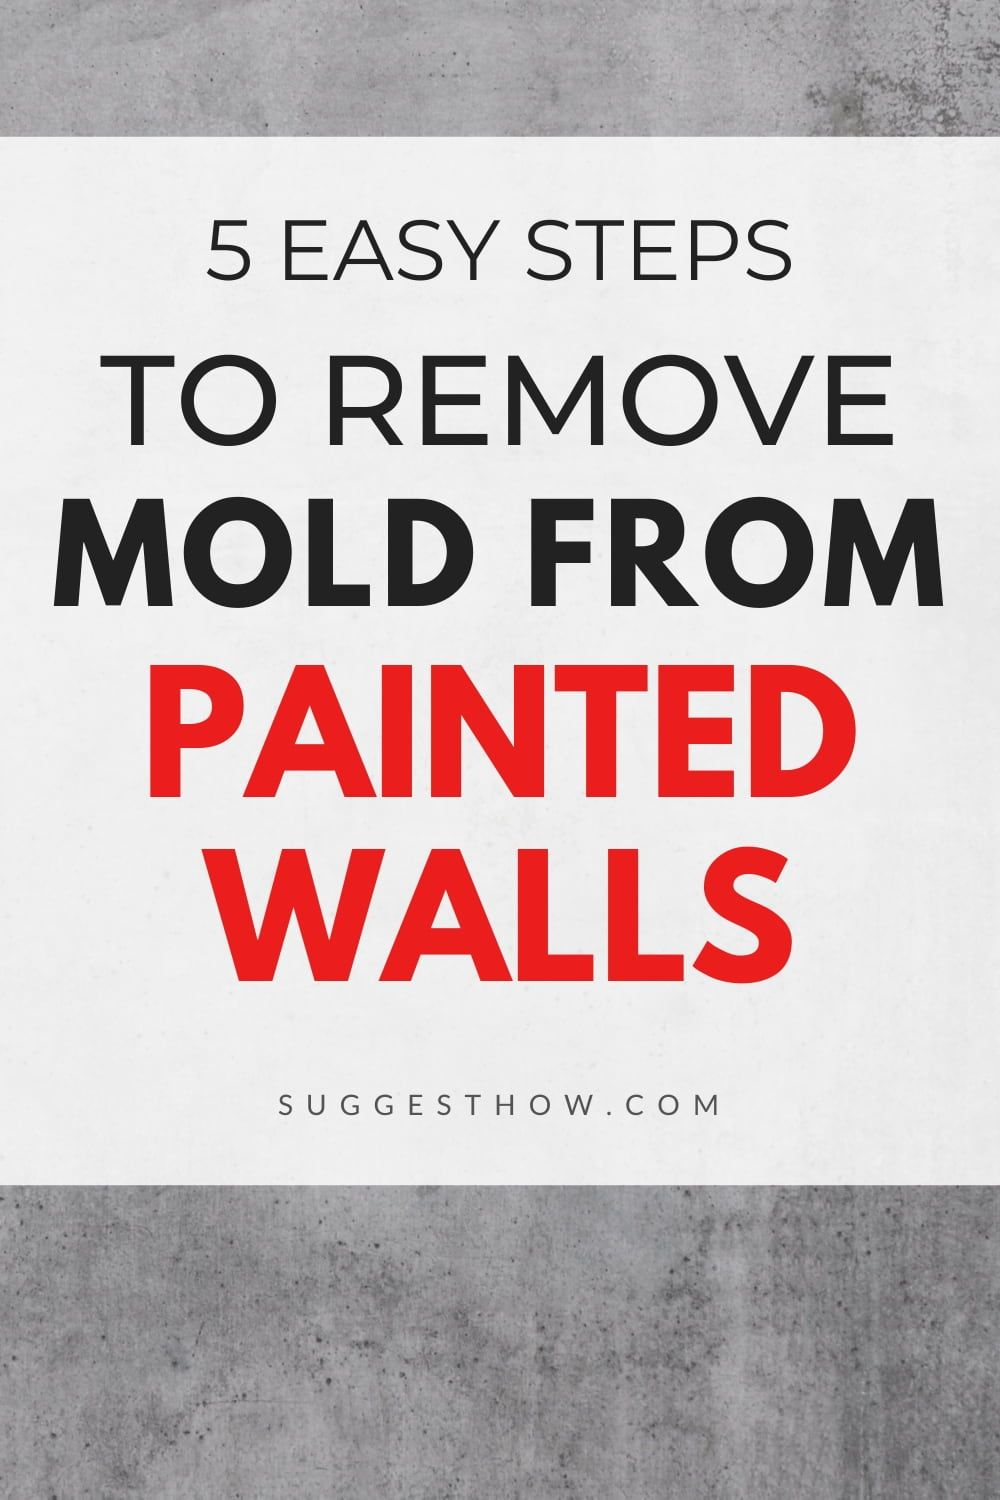 How to Remove Mold from Painted Walls – Easy and Simple Ways